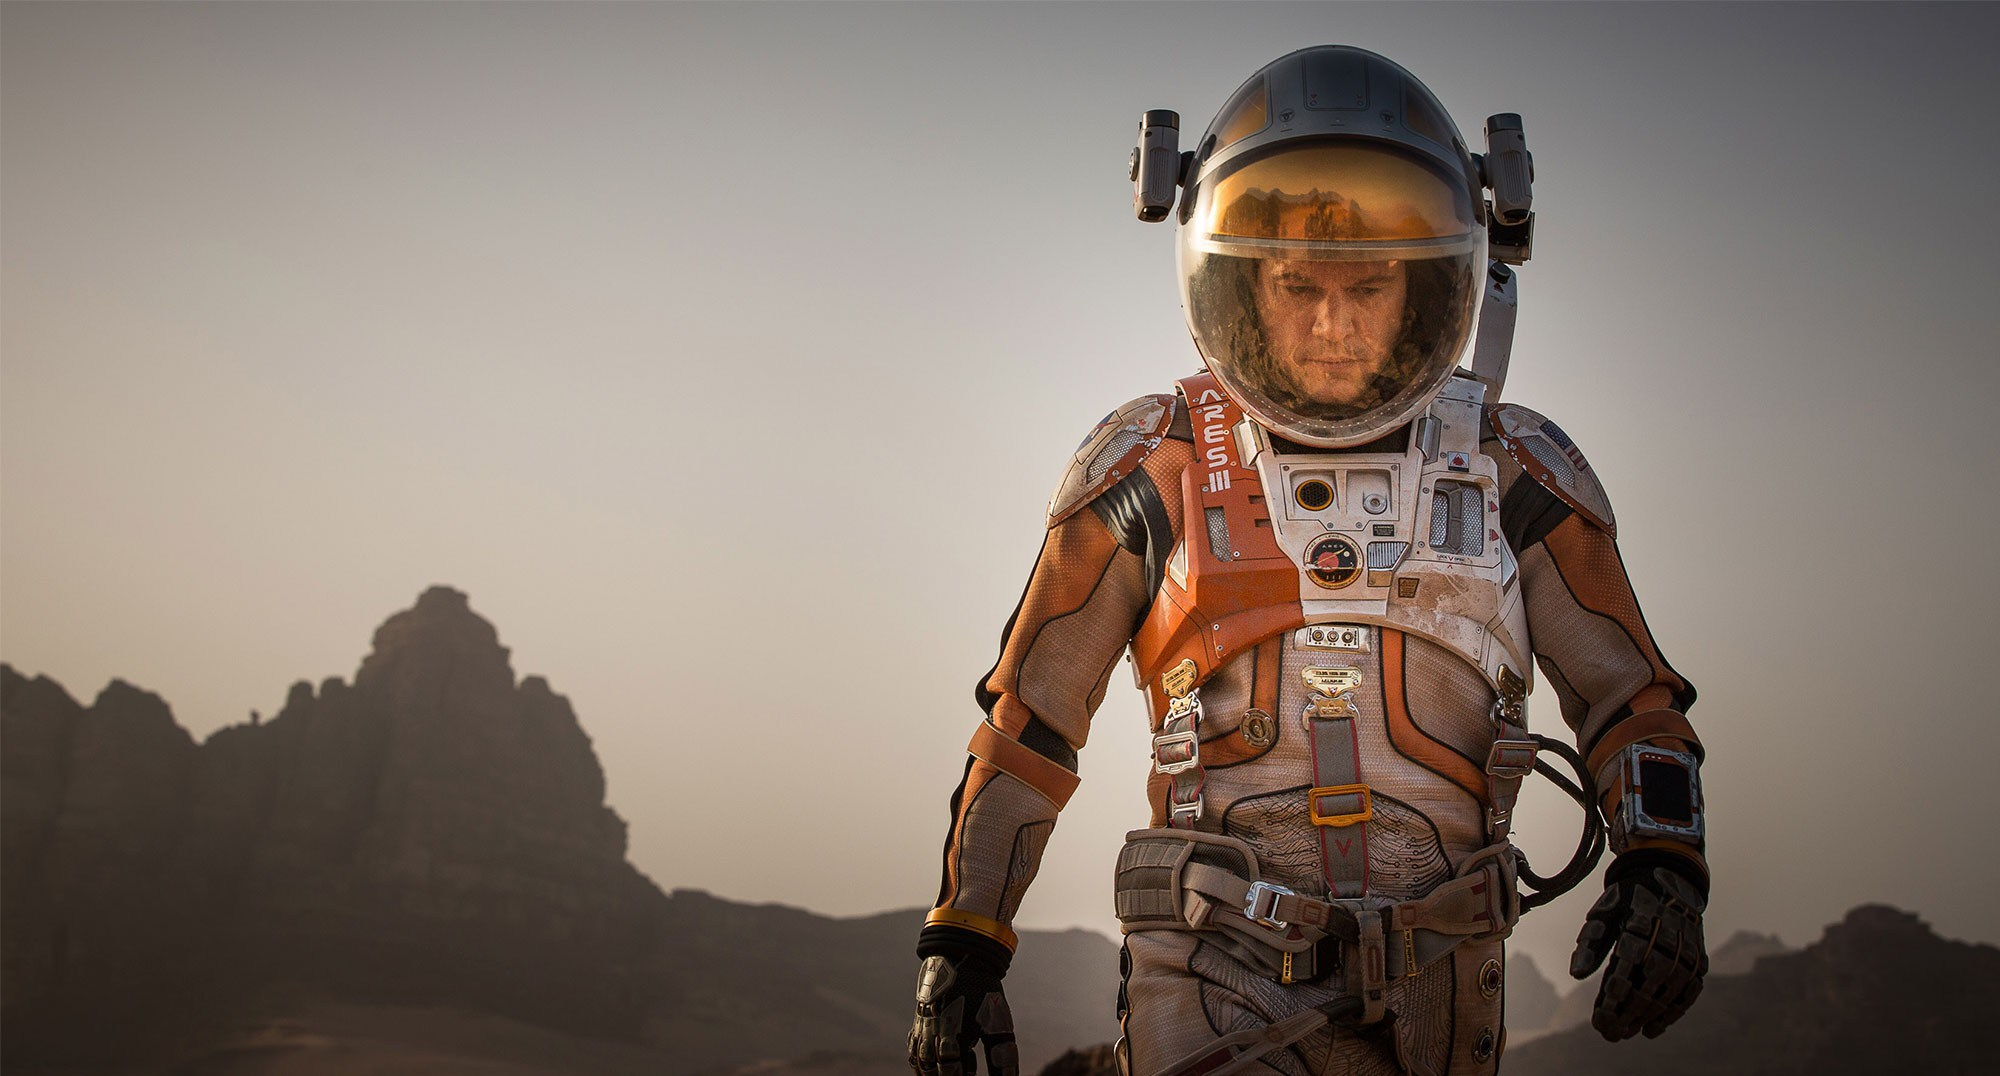 Good Quality The Martian Movie HD Wallpaper Wallpaper